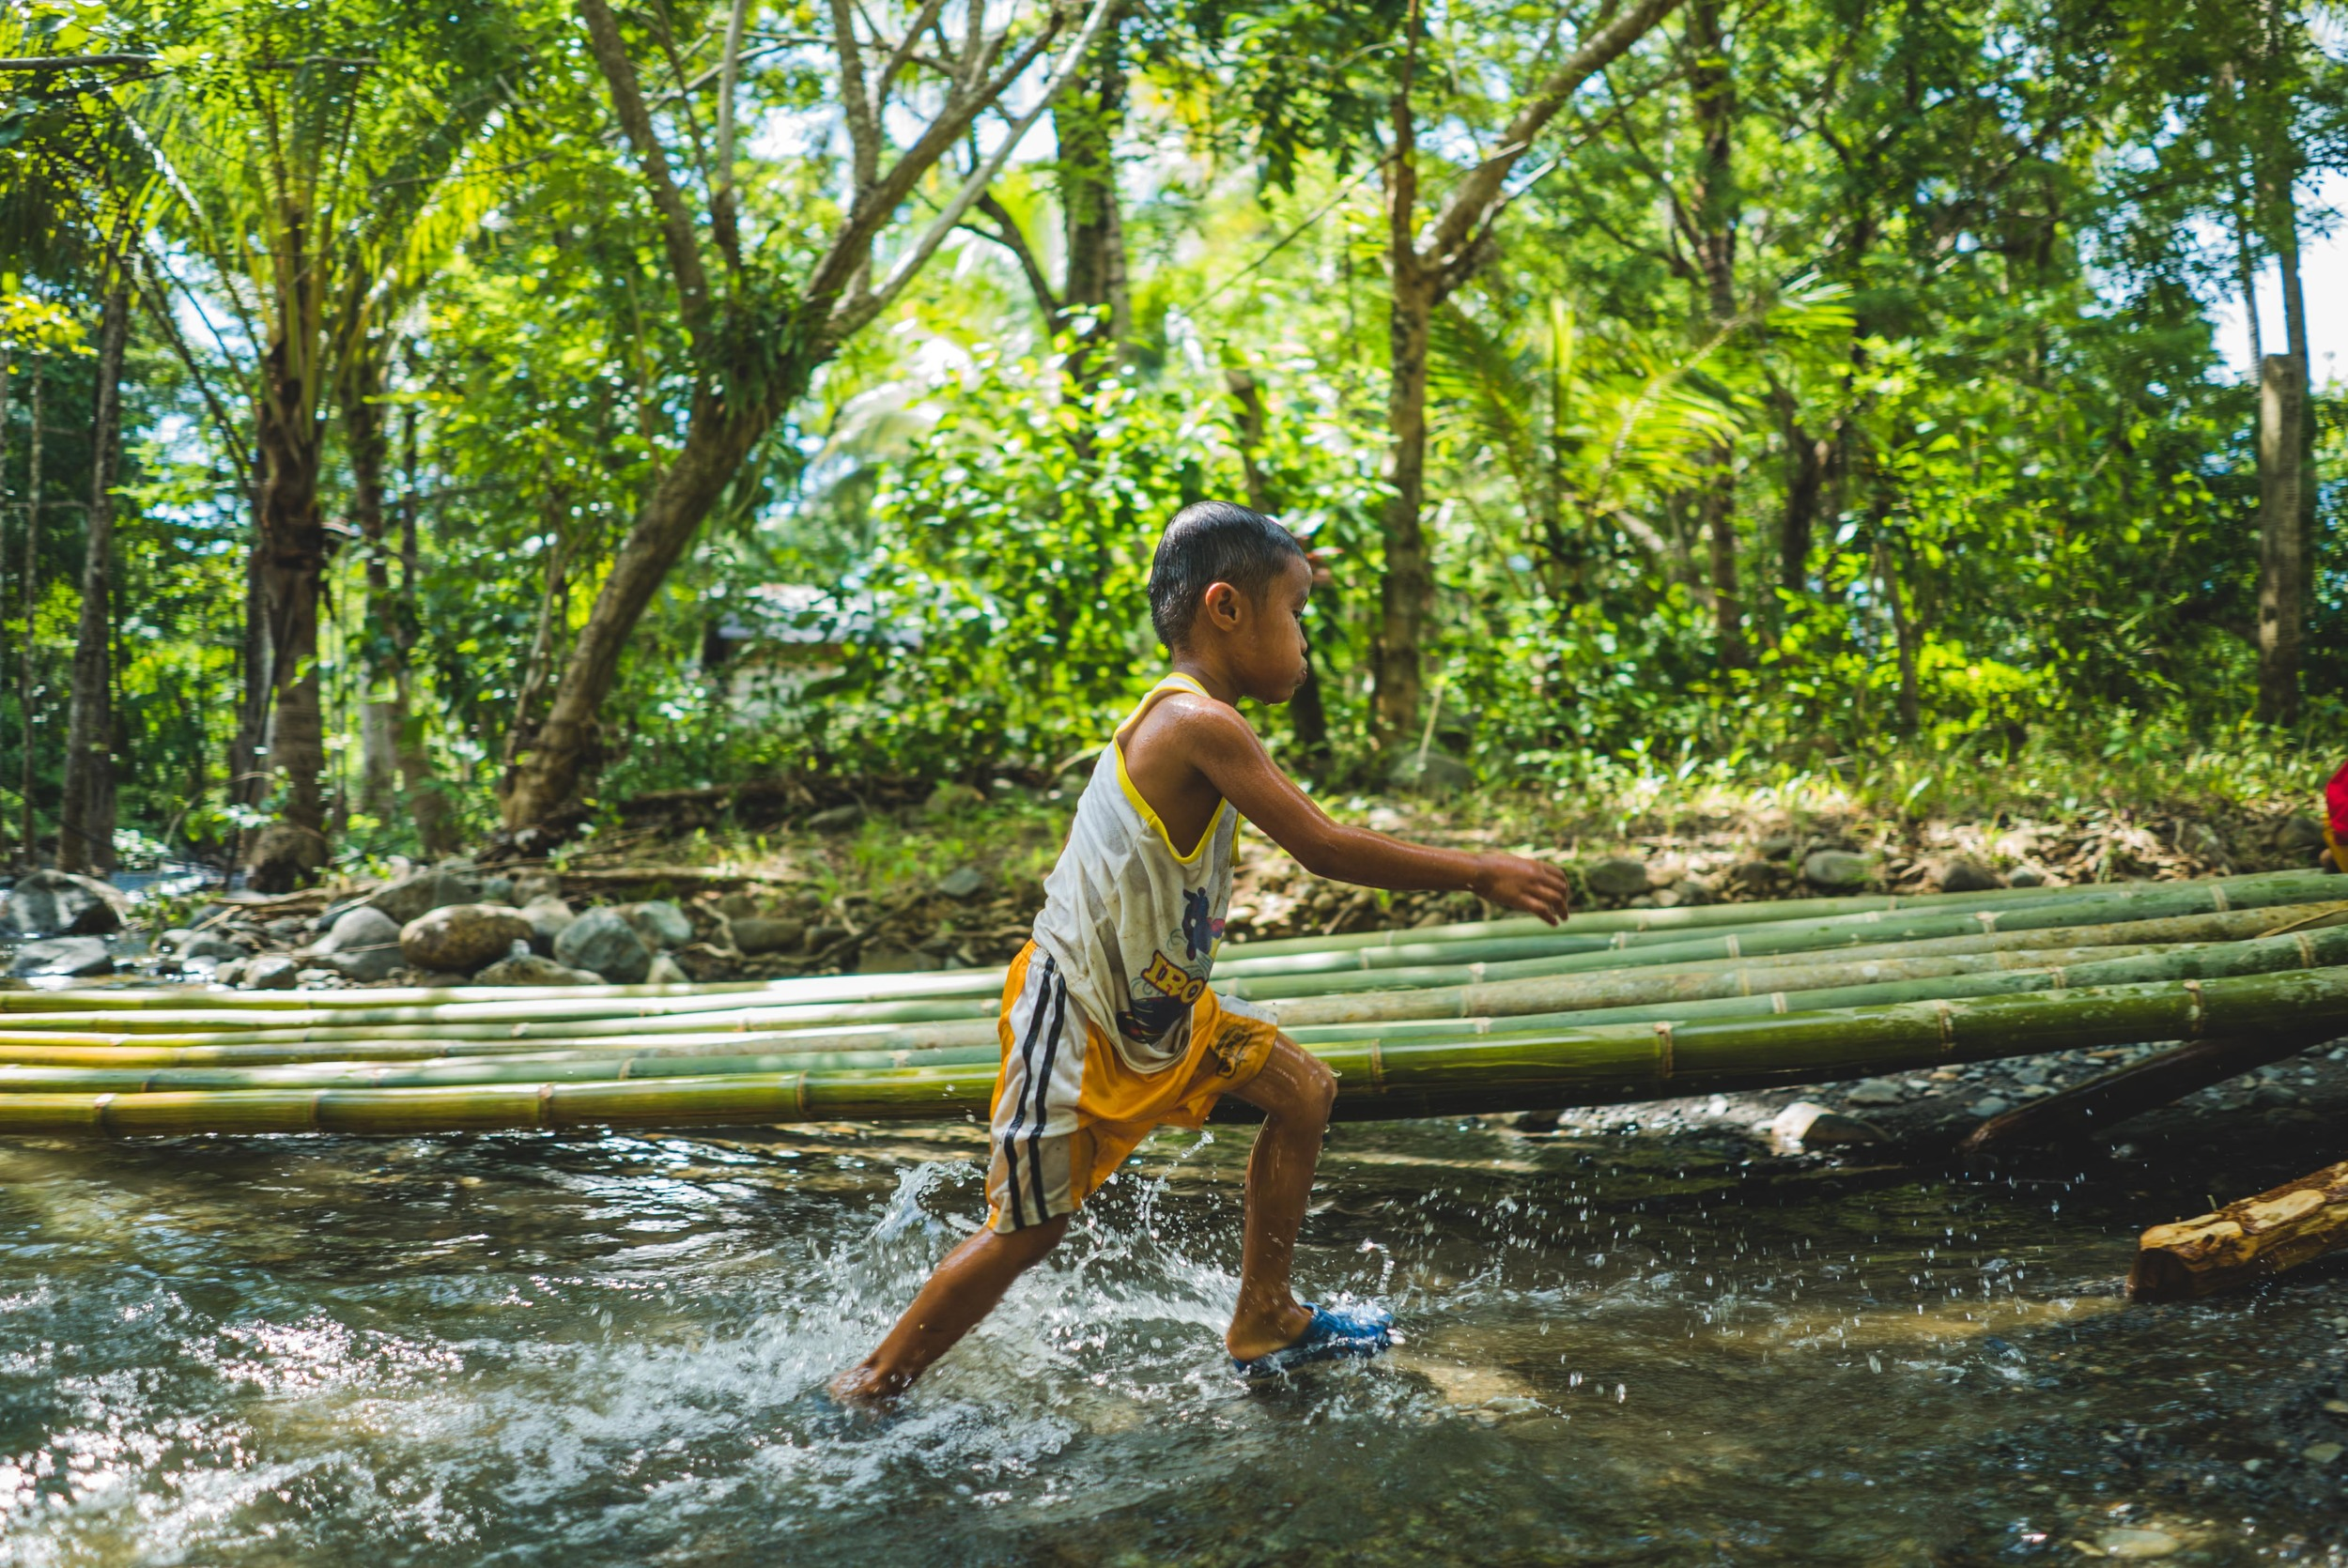 A child splashes around to cool off as he runs through the river.